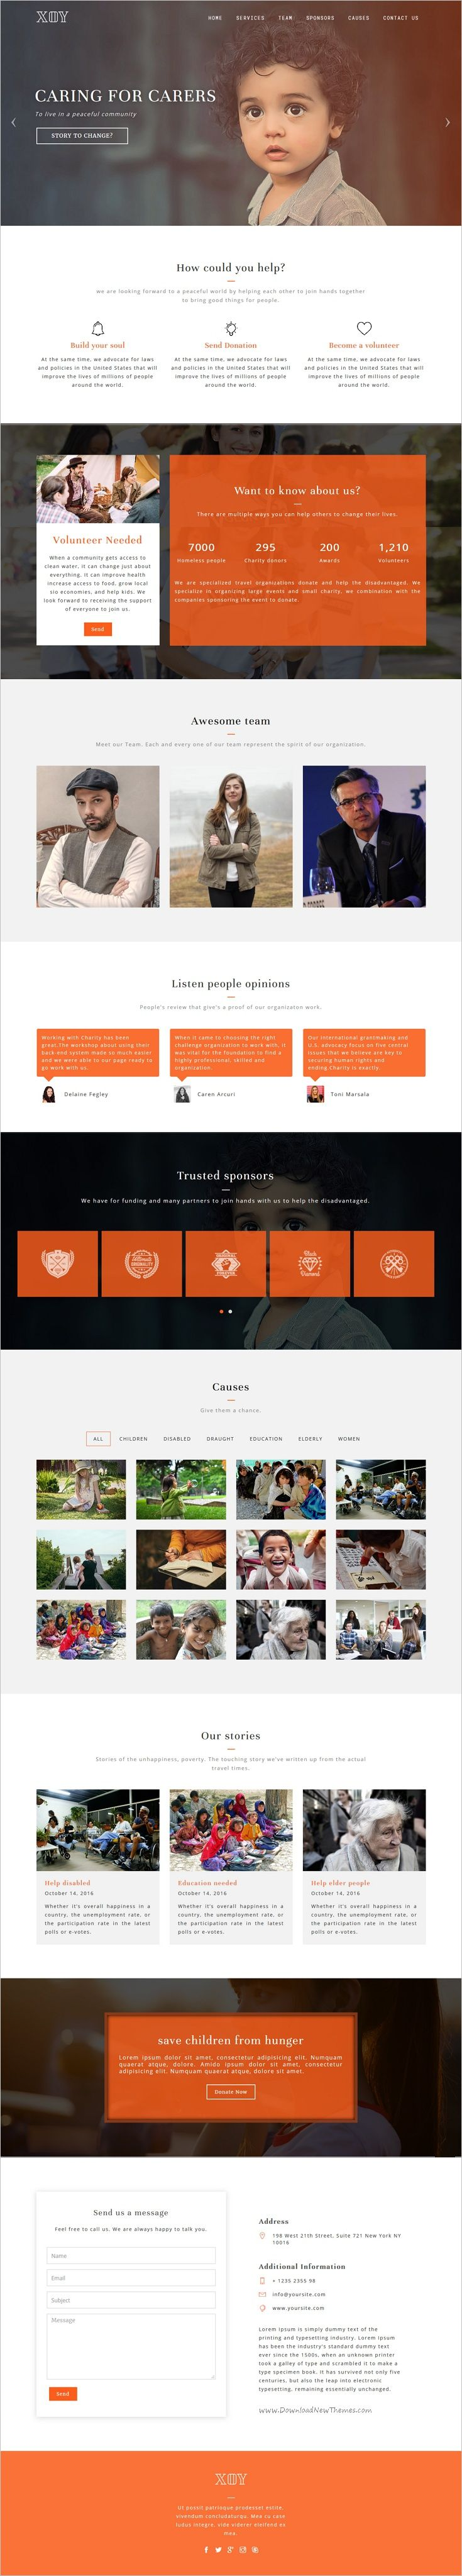 Xoy is a professional and modern one page #bootstrap #HTML template for #charity #NGO #organization multipurpose website with 8+ homepage layouts download now➩  https://themeforest.net/item/xoy-multipurpose-html5-template/18890010?ref=Datasata